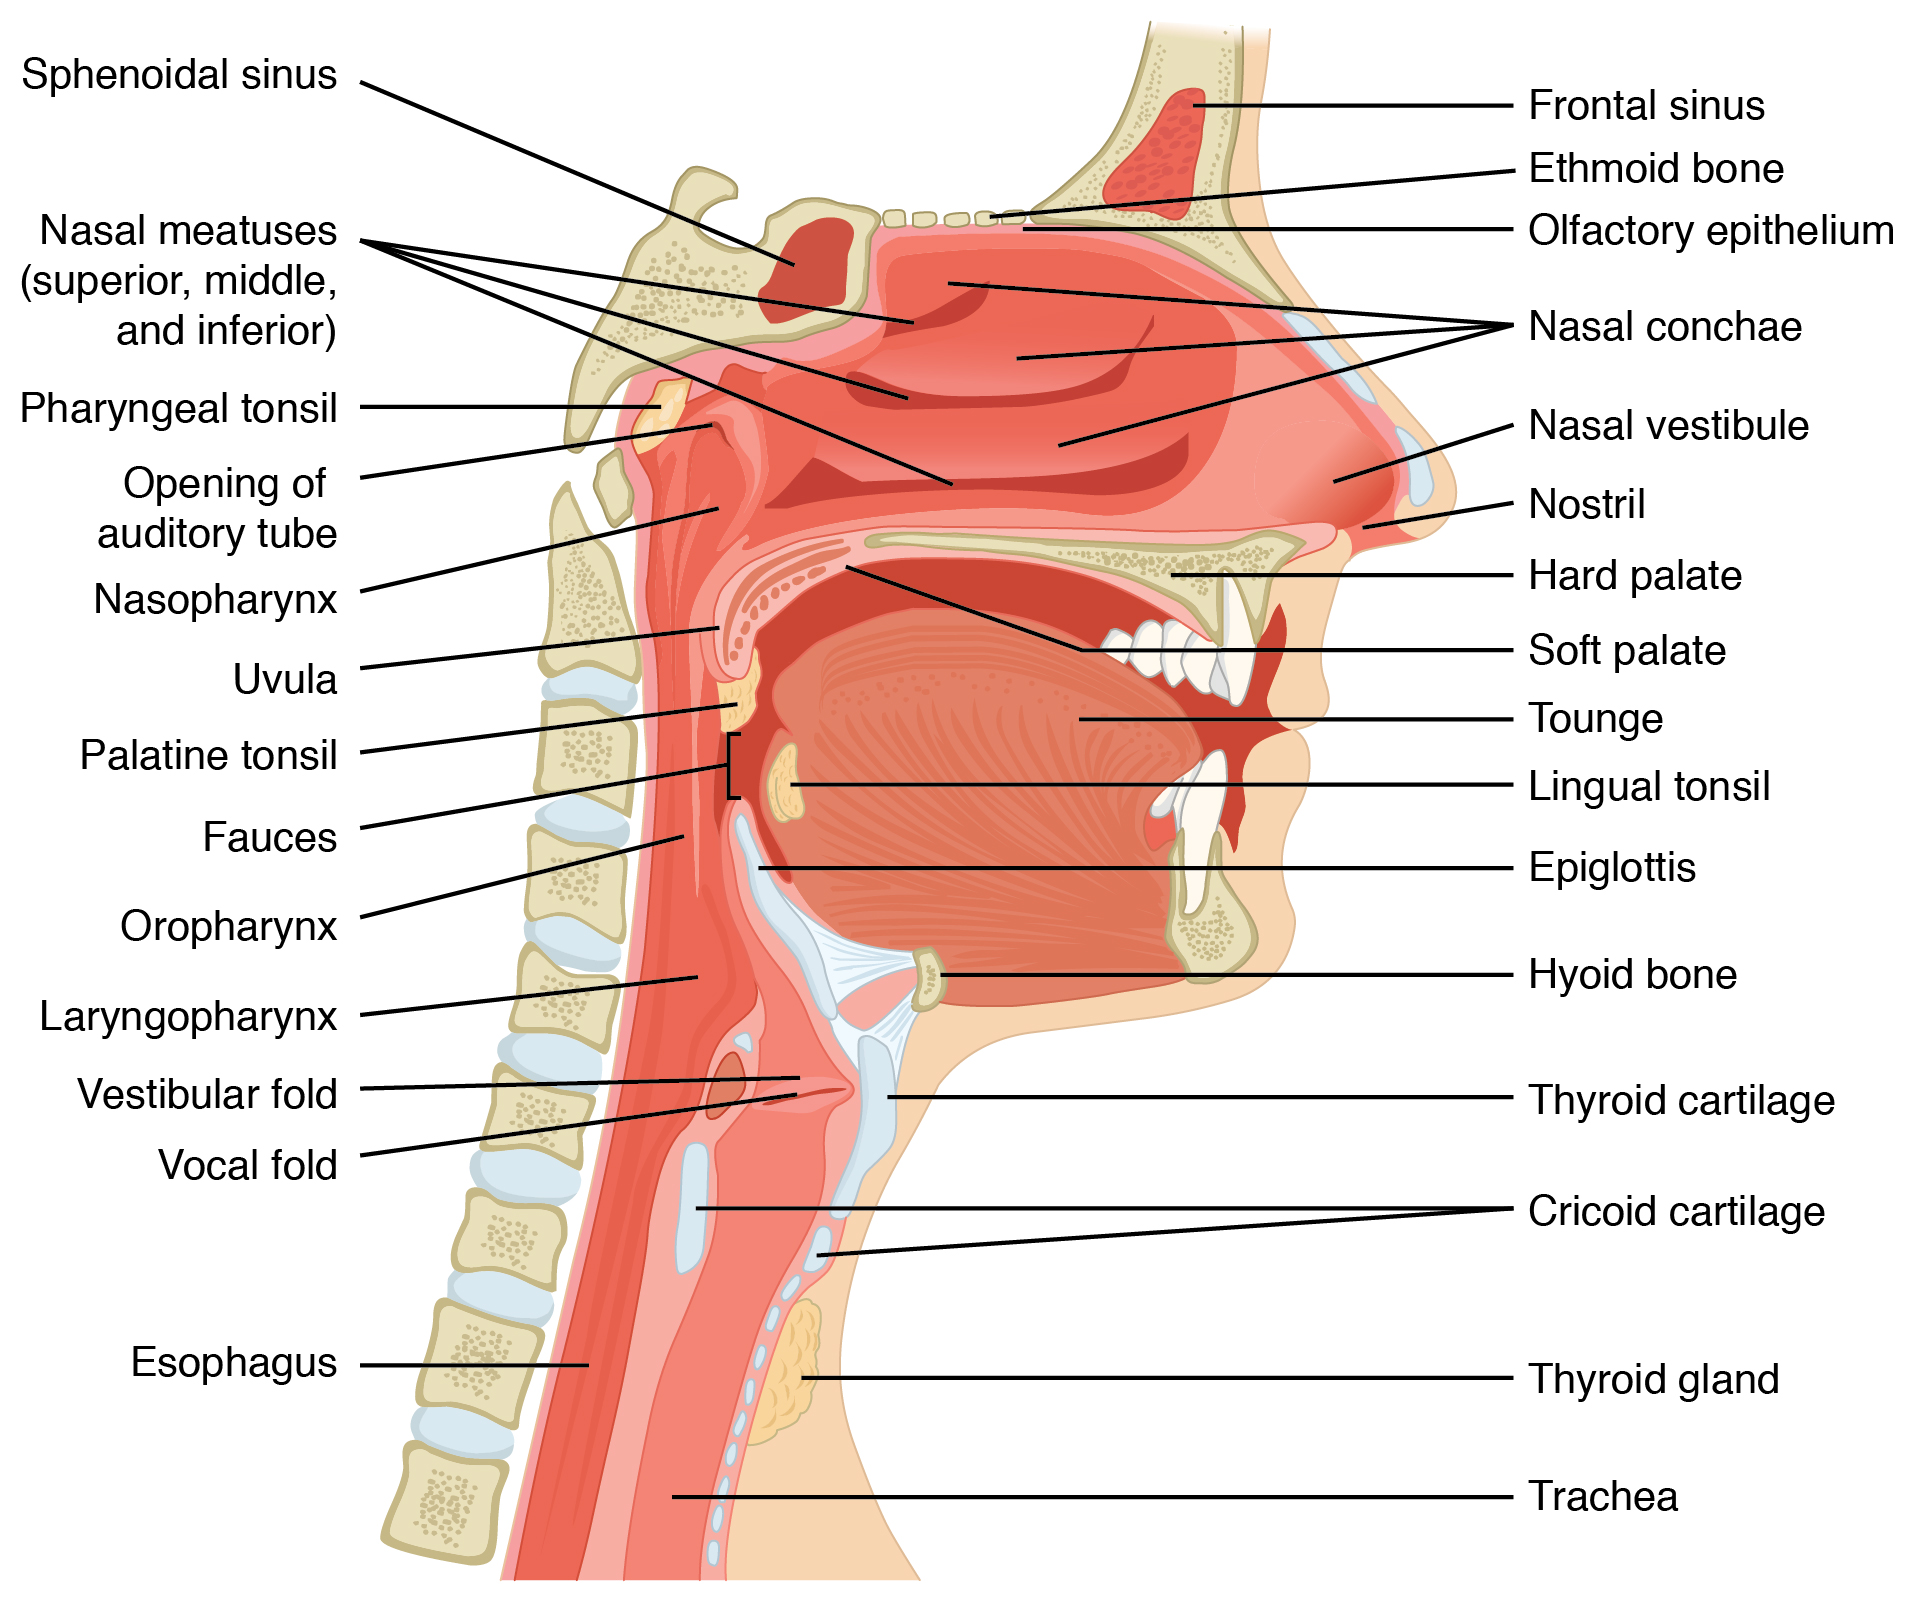 File:2303 Anatomy of Nose-Pharynx-Mouth-Larynx.jpg - Wikimedia Commons